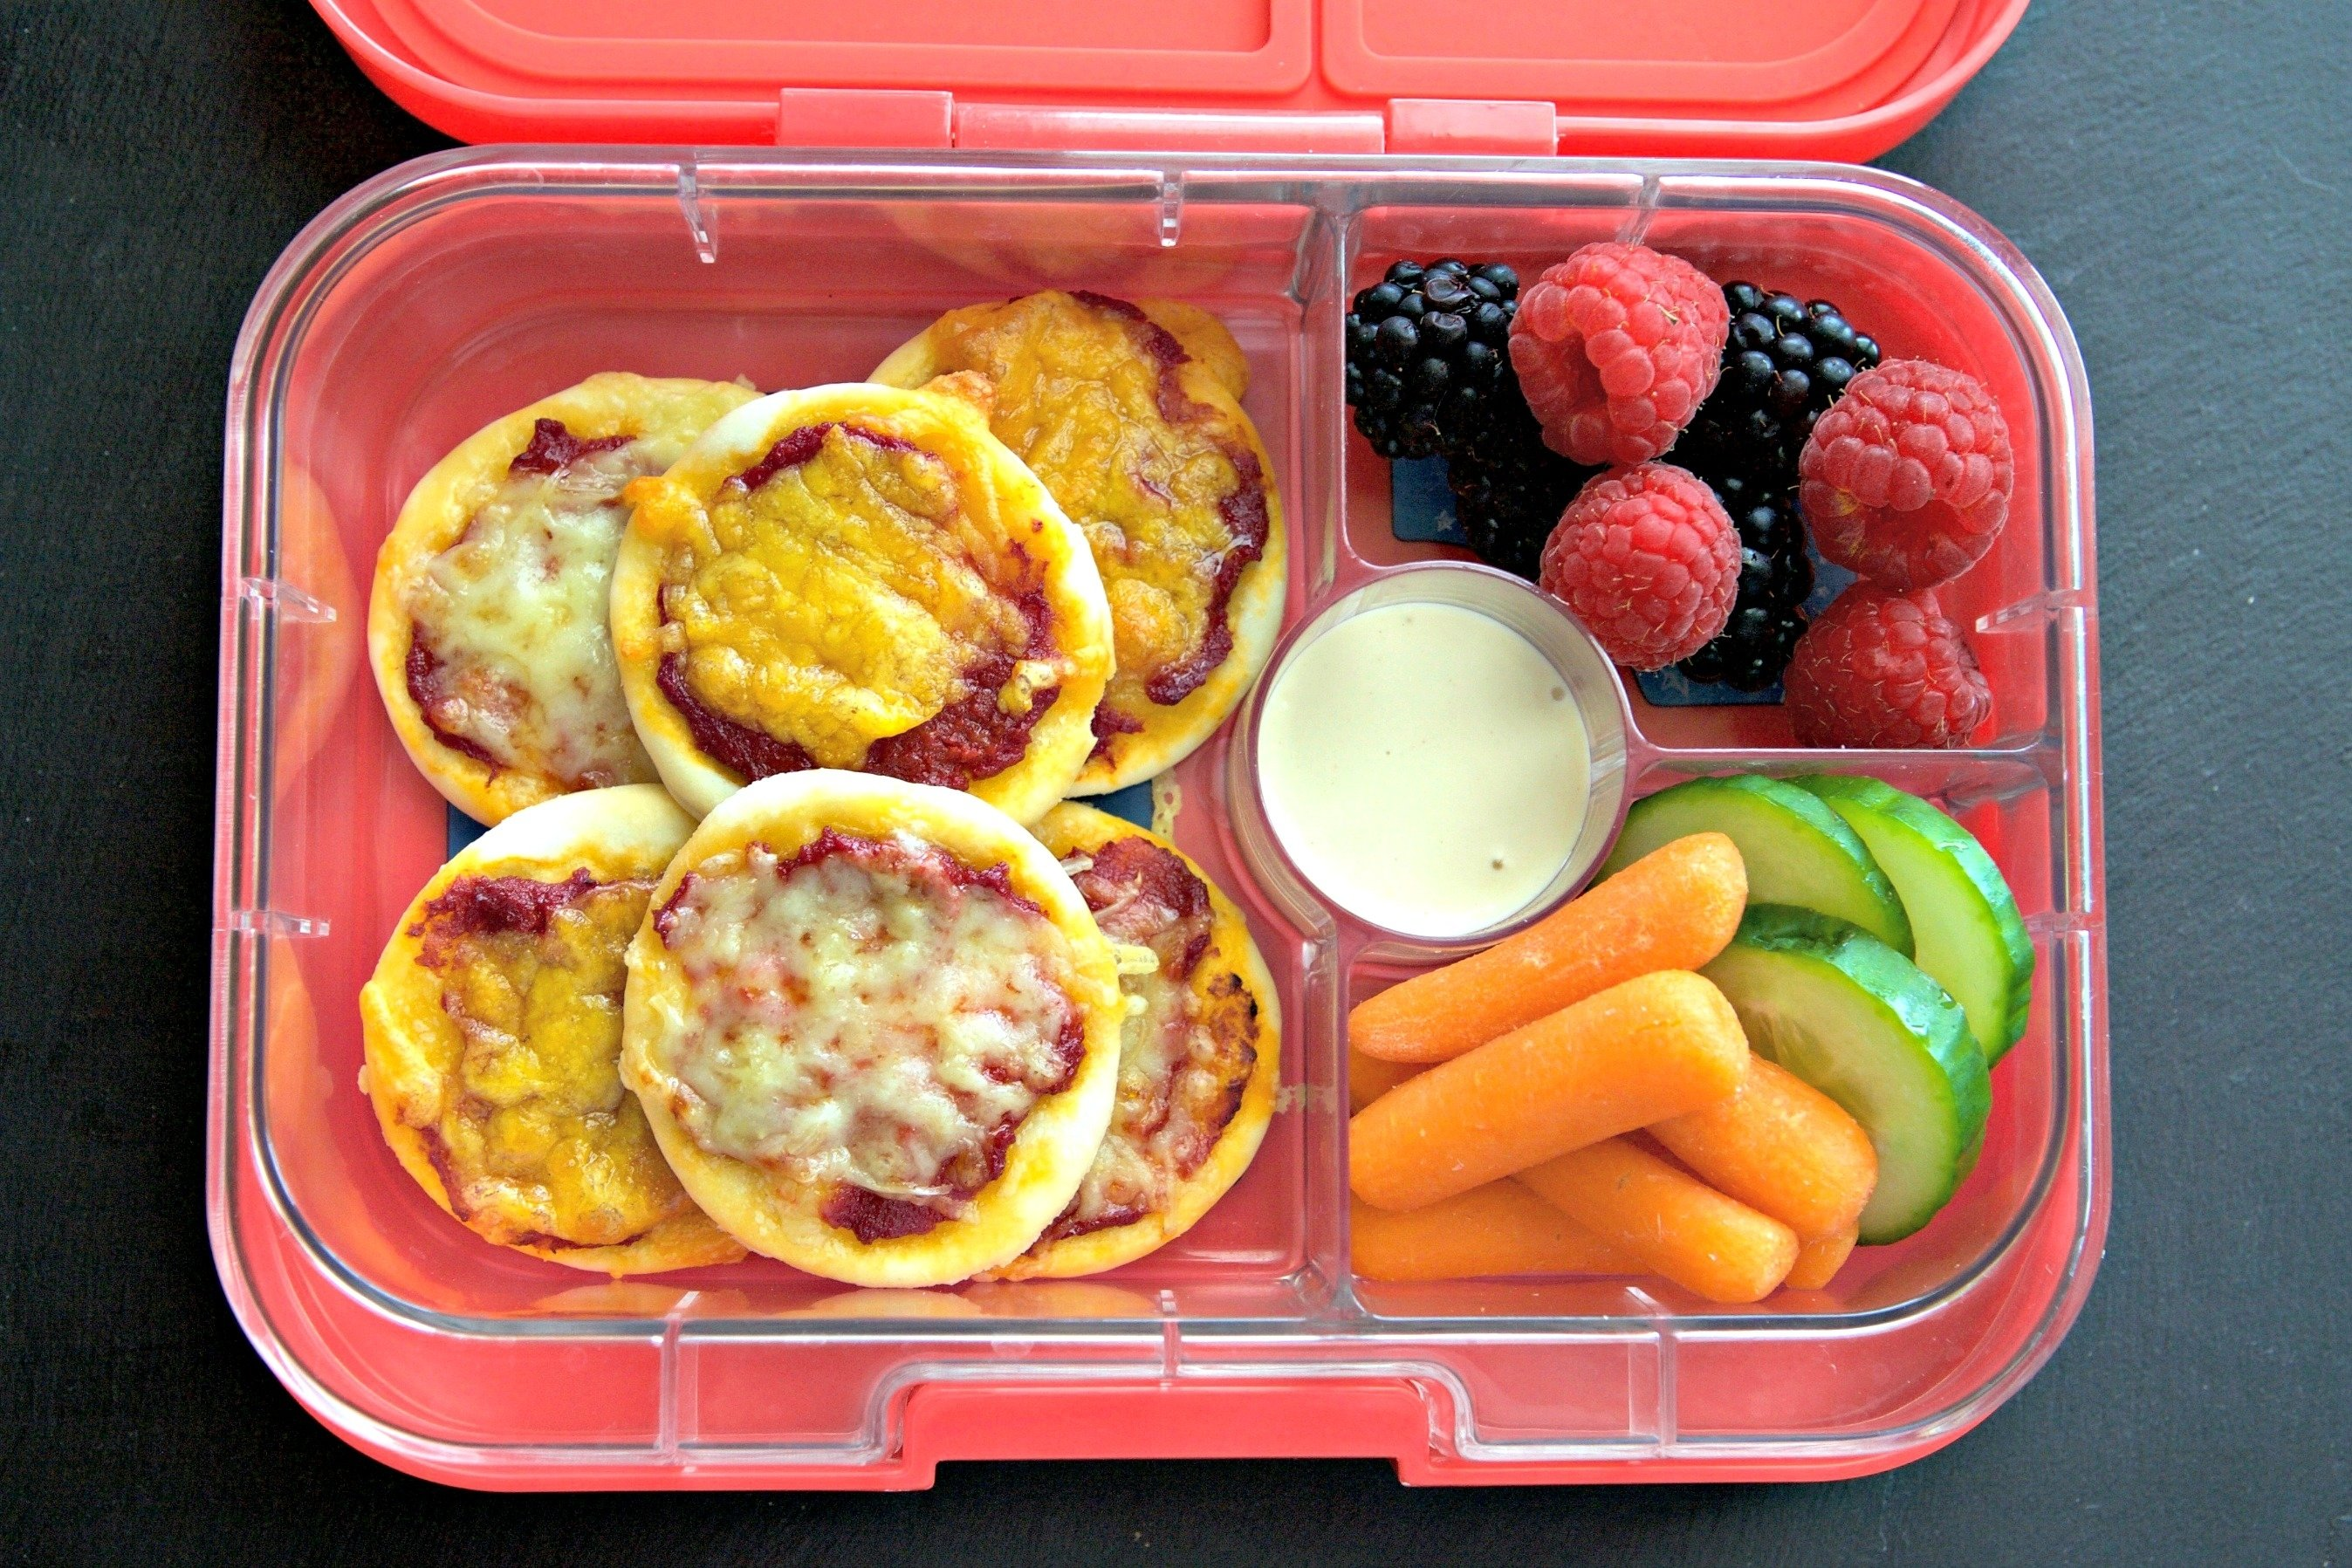 10 Most Popular Lunchbox Ideas For Picky Eaters